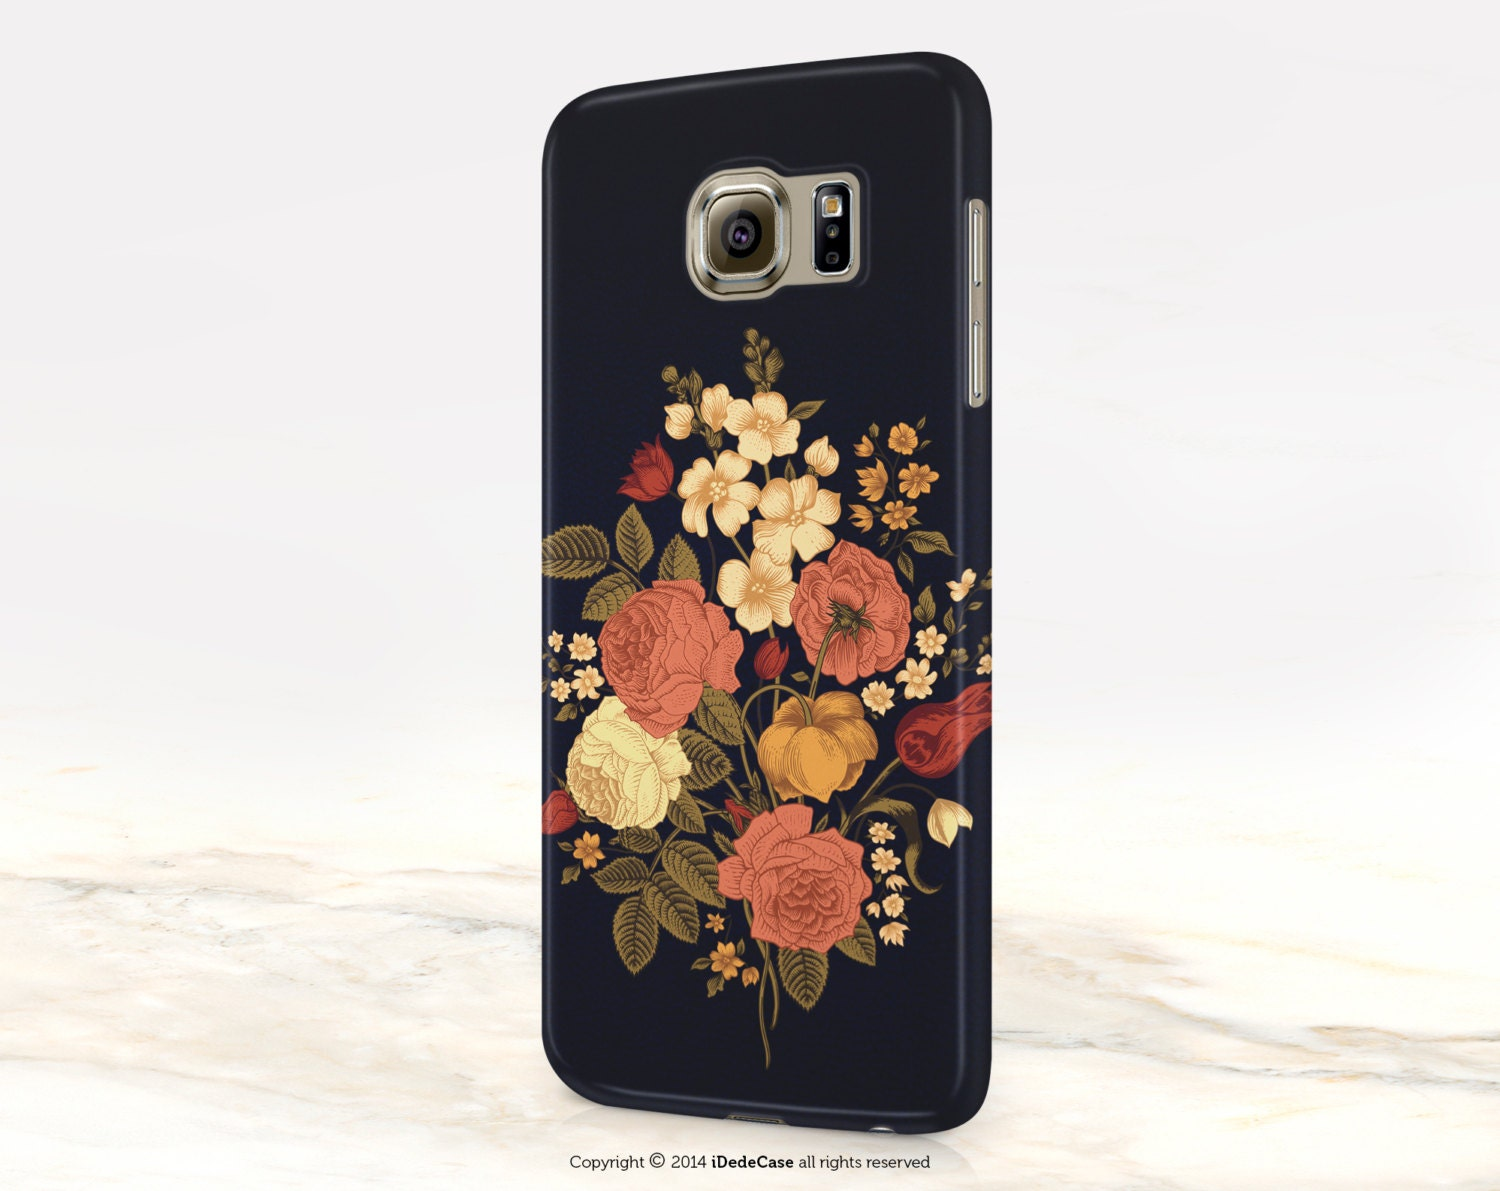 How to use scrapbook on galaxy s5 - Samsung Galaxy Note 5 Case Floral Lg G3 Case Floral Lg G4 Case Samsung Galaxy S6 Case Floral Samsung Galaxy S7 Case Floral S4 Mini Case